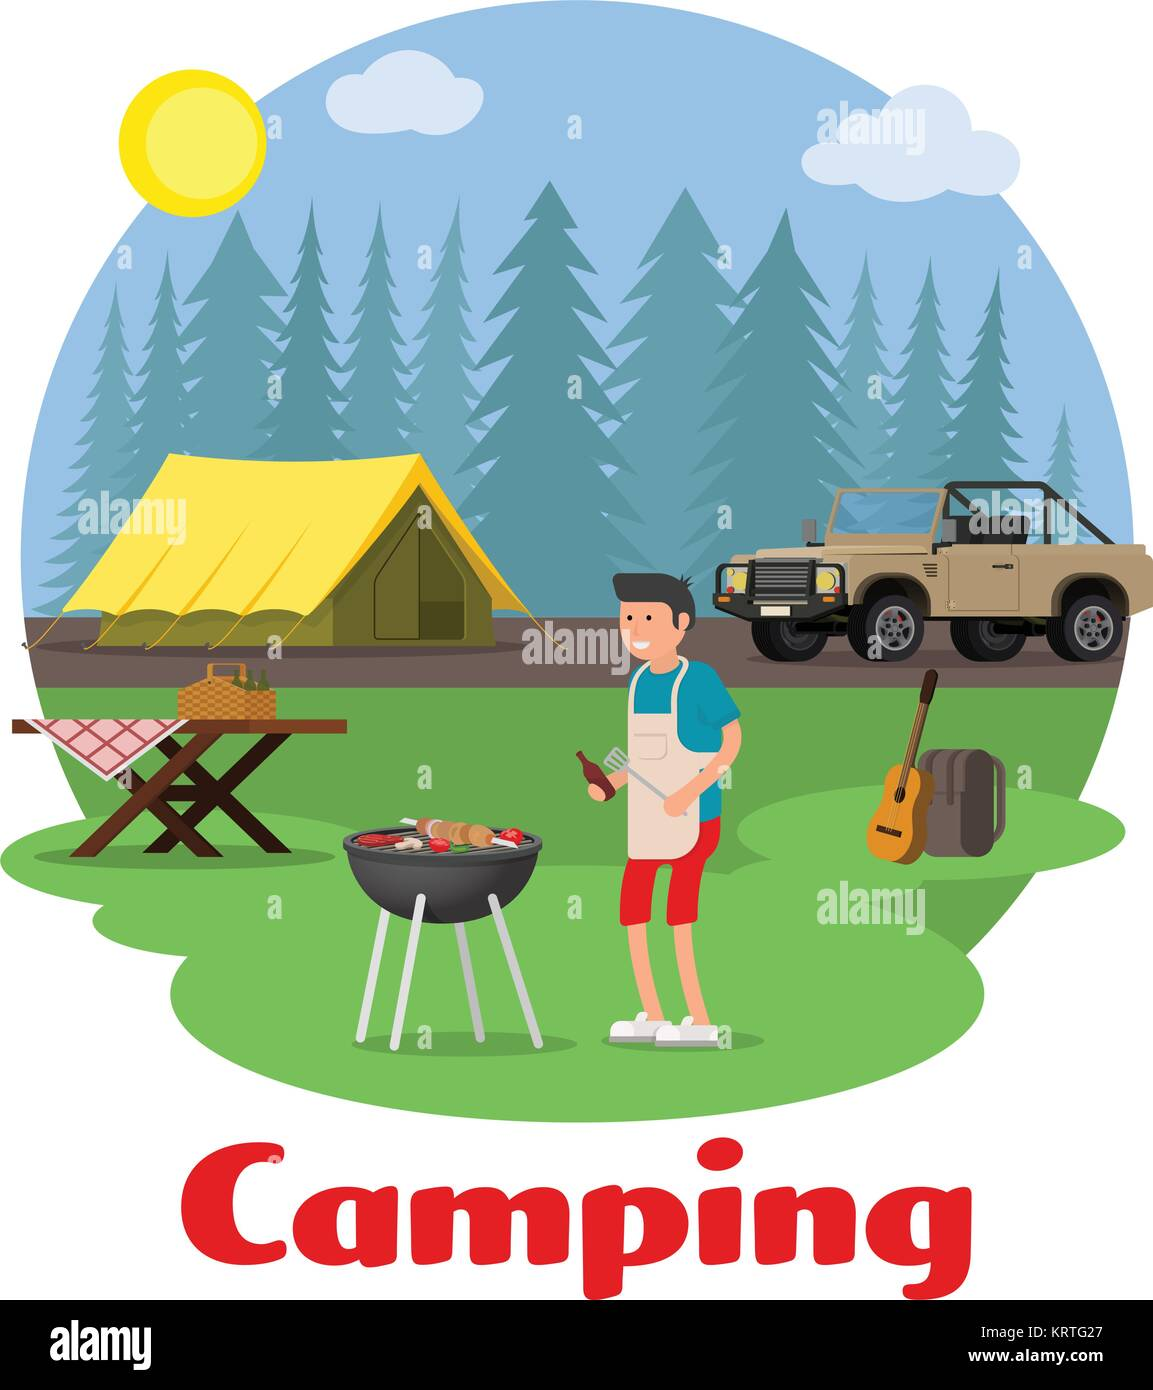 Camping and outdoor recreation concept. Man of cooking meat with a grill on a forest glade. Forest camp with a tent - Stock Vector